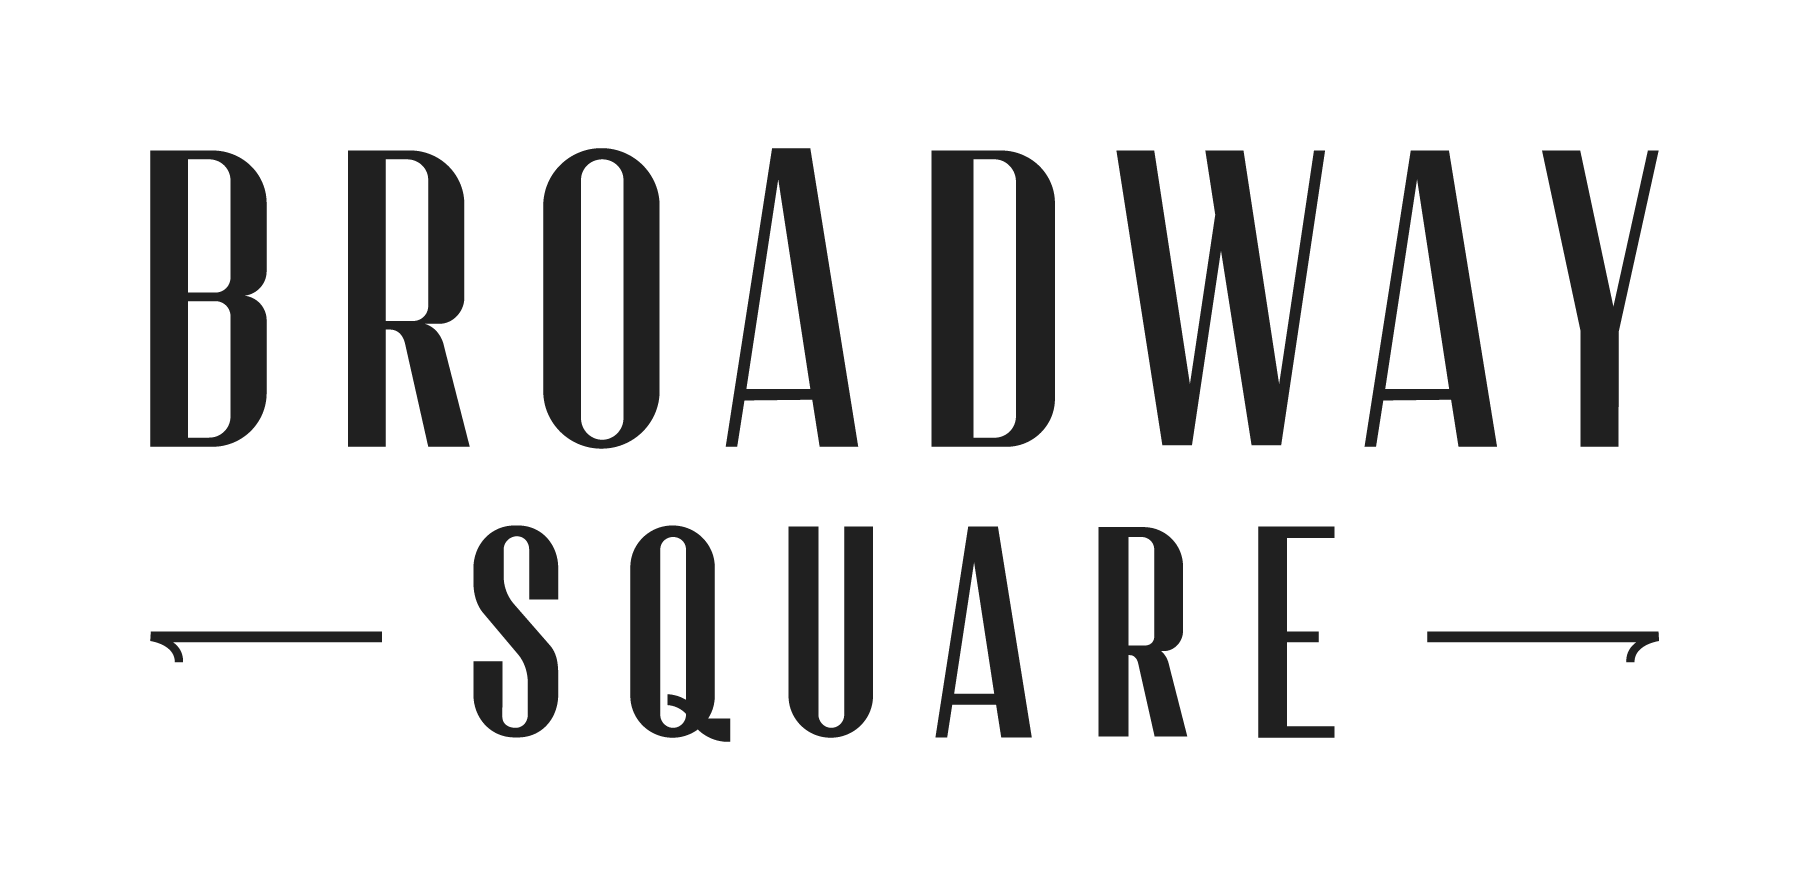 This image shows the Broadway Square logo.